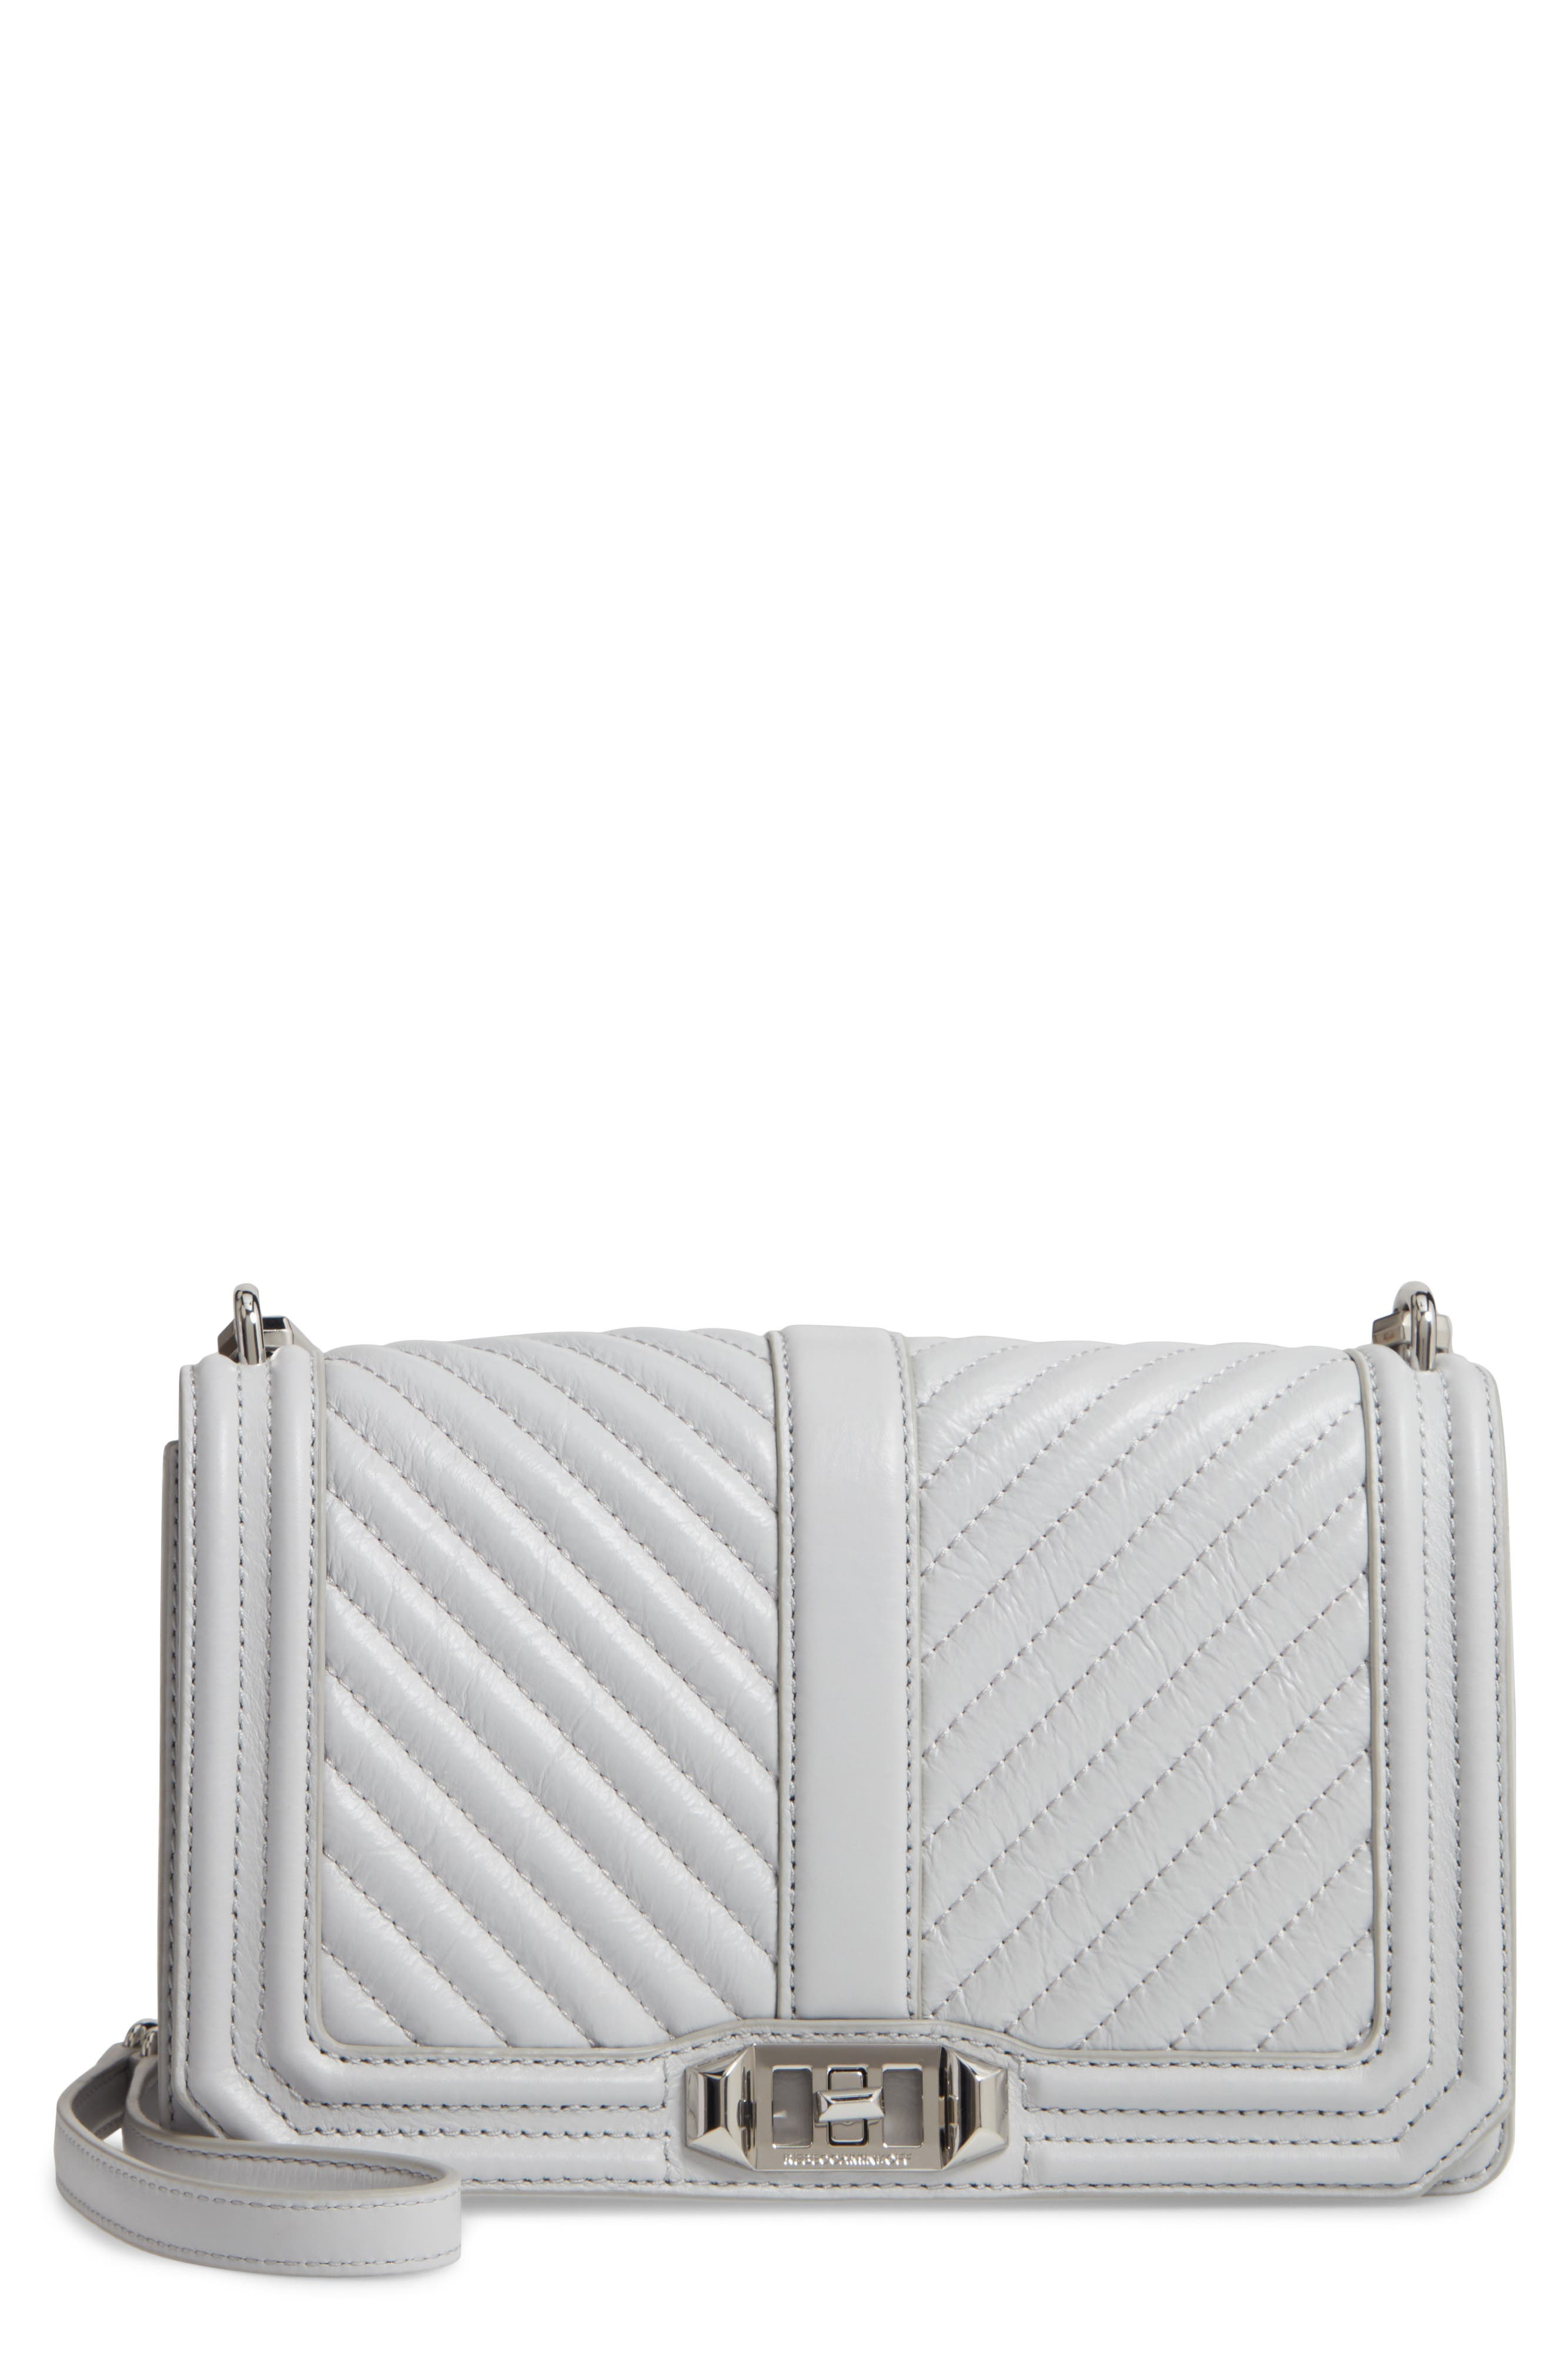 REBECCA MINKOFF, 'Chevron Quilted Love' Crossbody Bag, Main thumbnail 1, color, ICE GREY